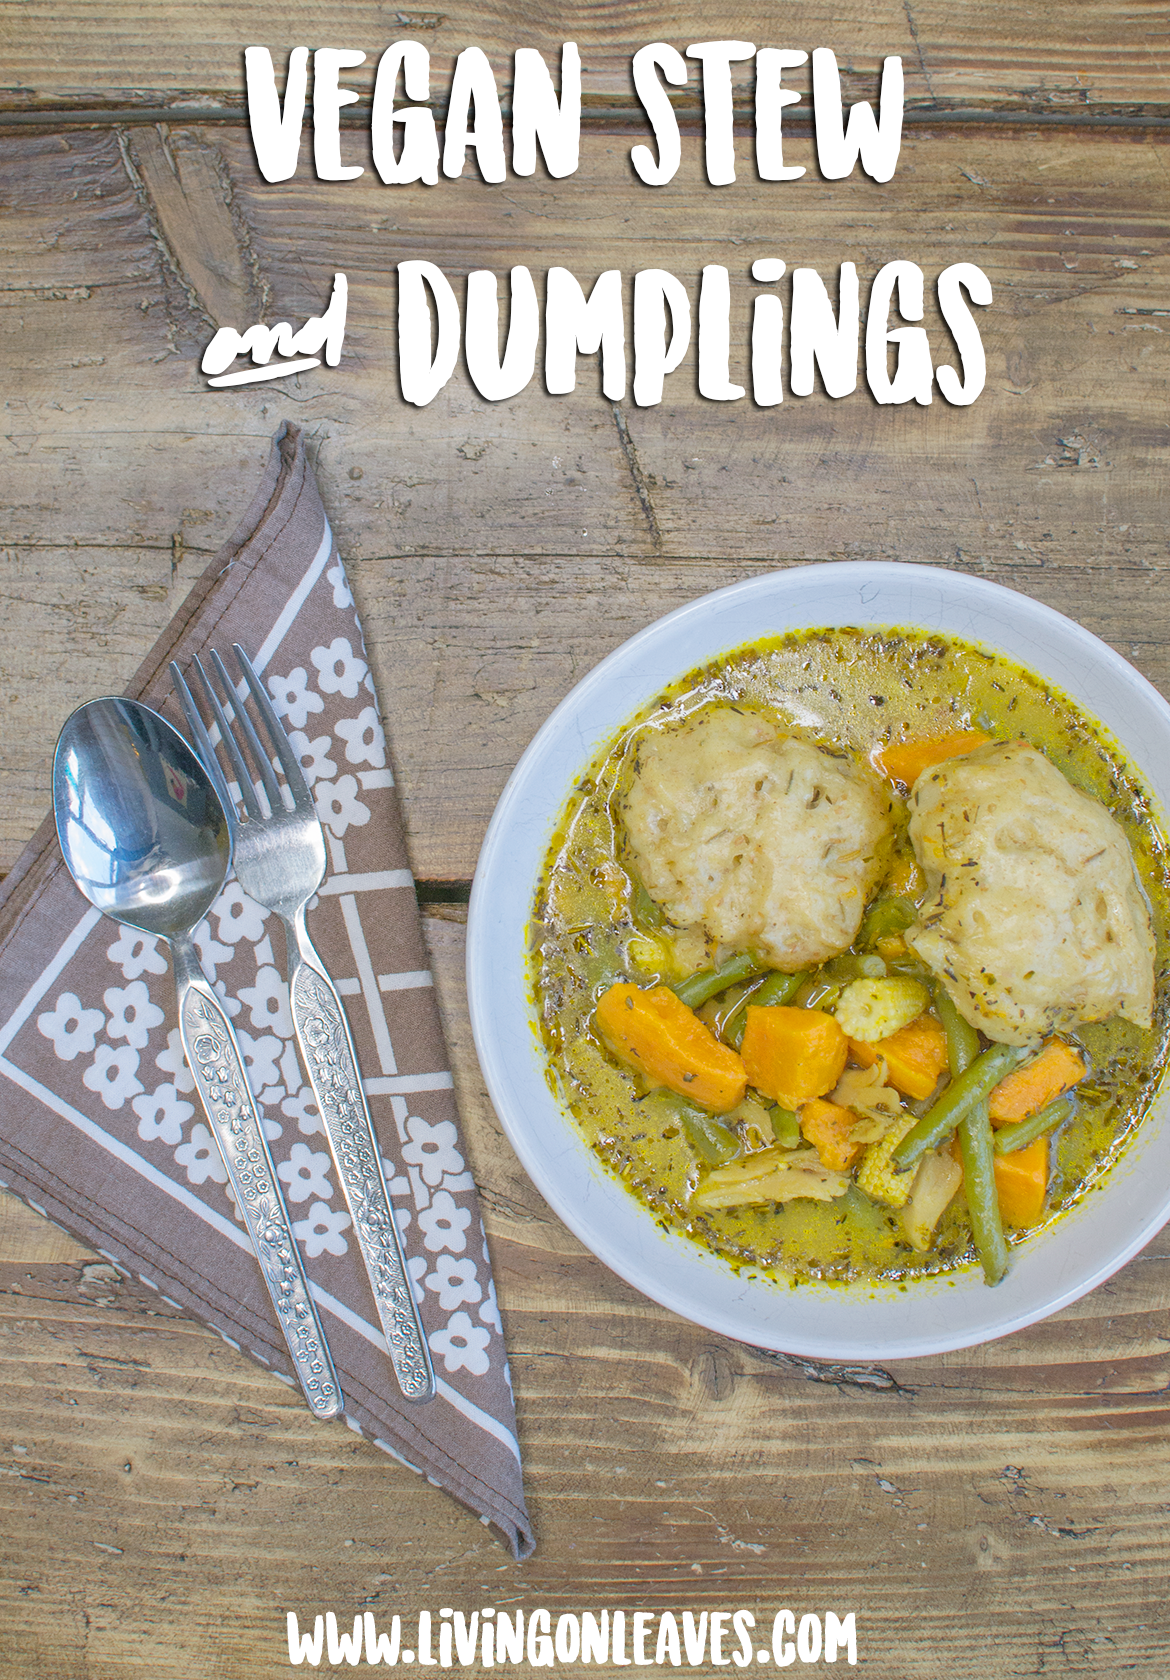 vegan stew and dumplings recipe